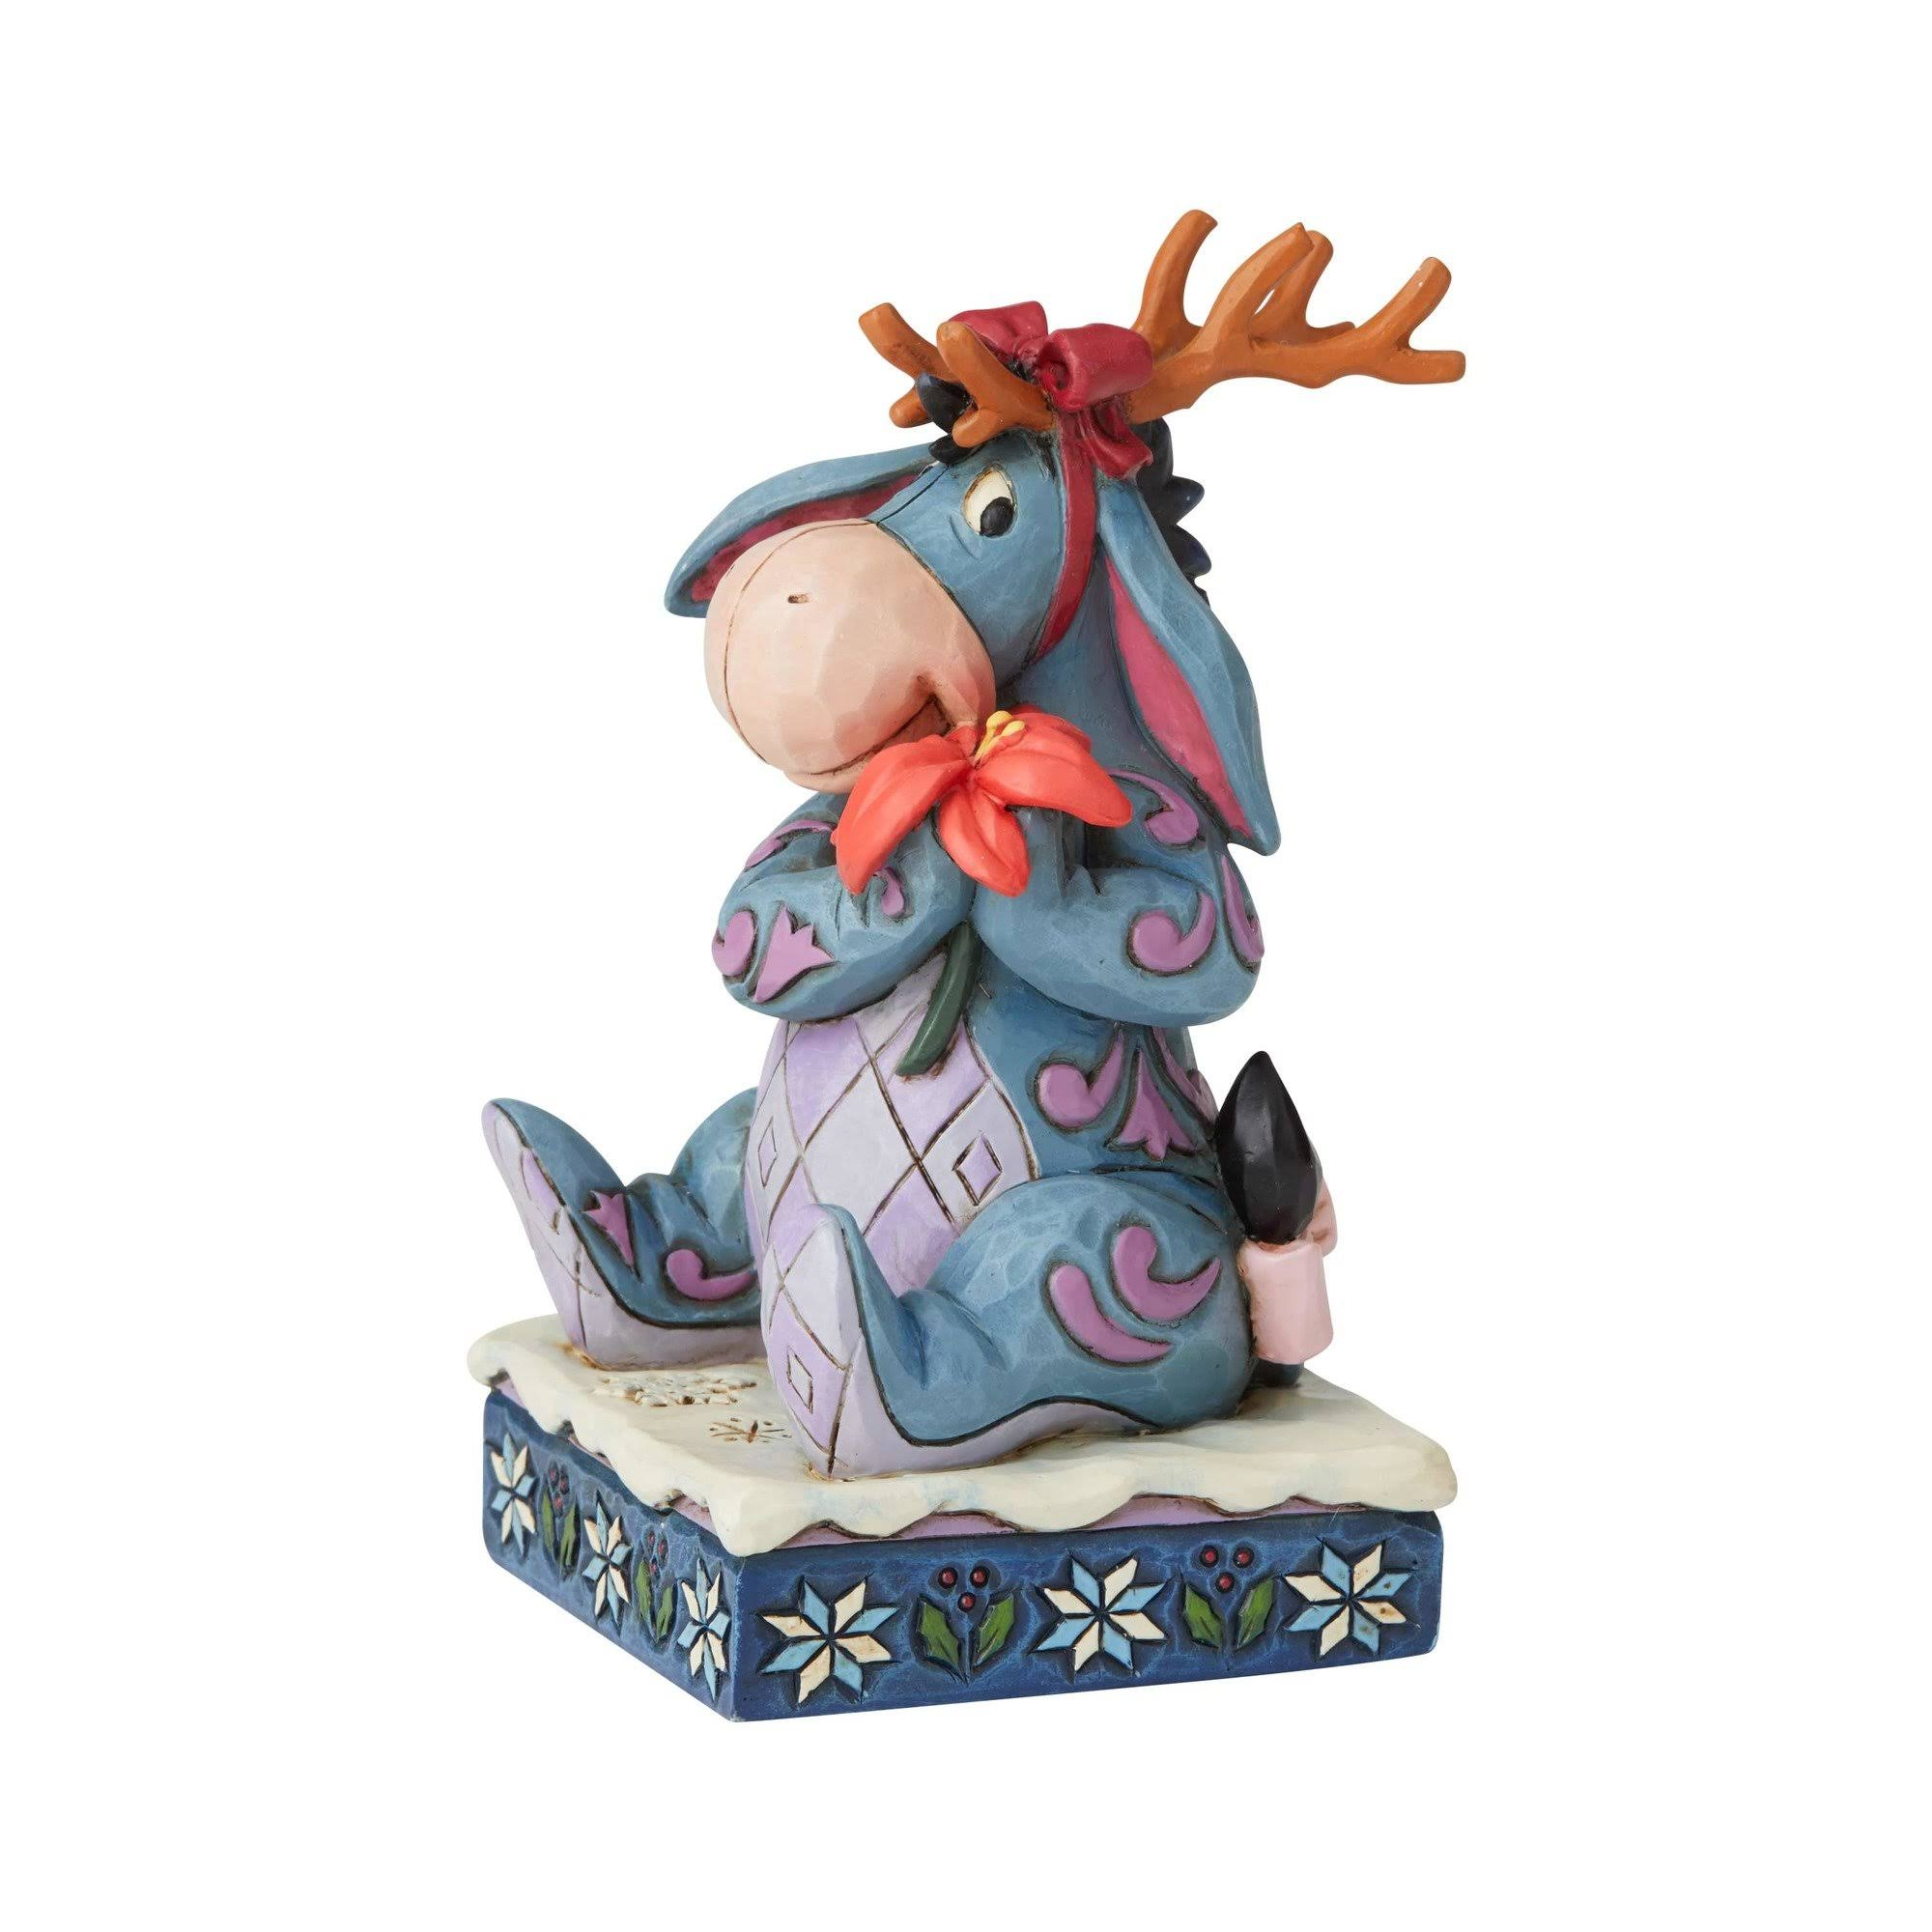 Disney Traditions Winter Wonders Eeyore Christmas Figurine